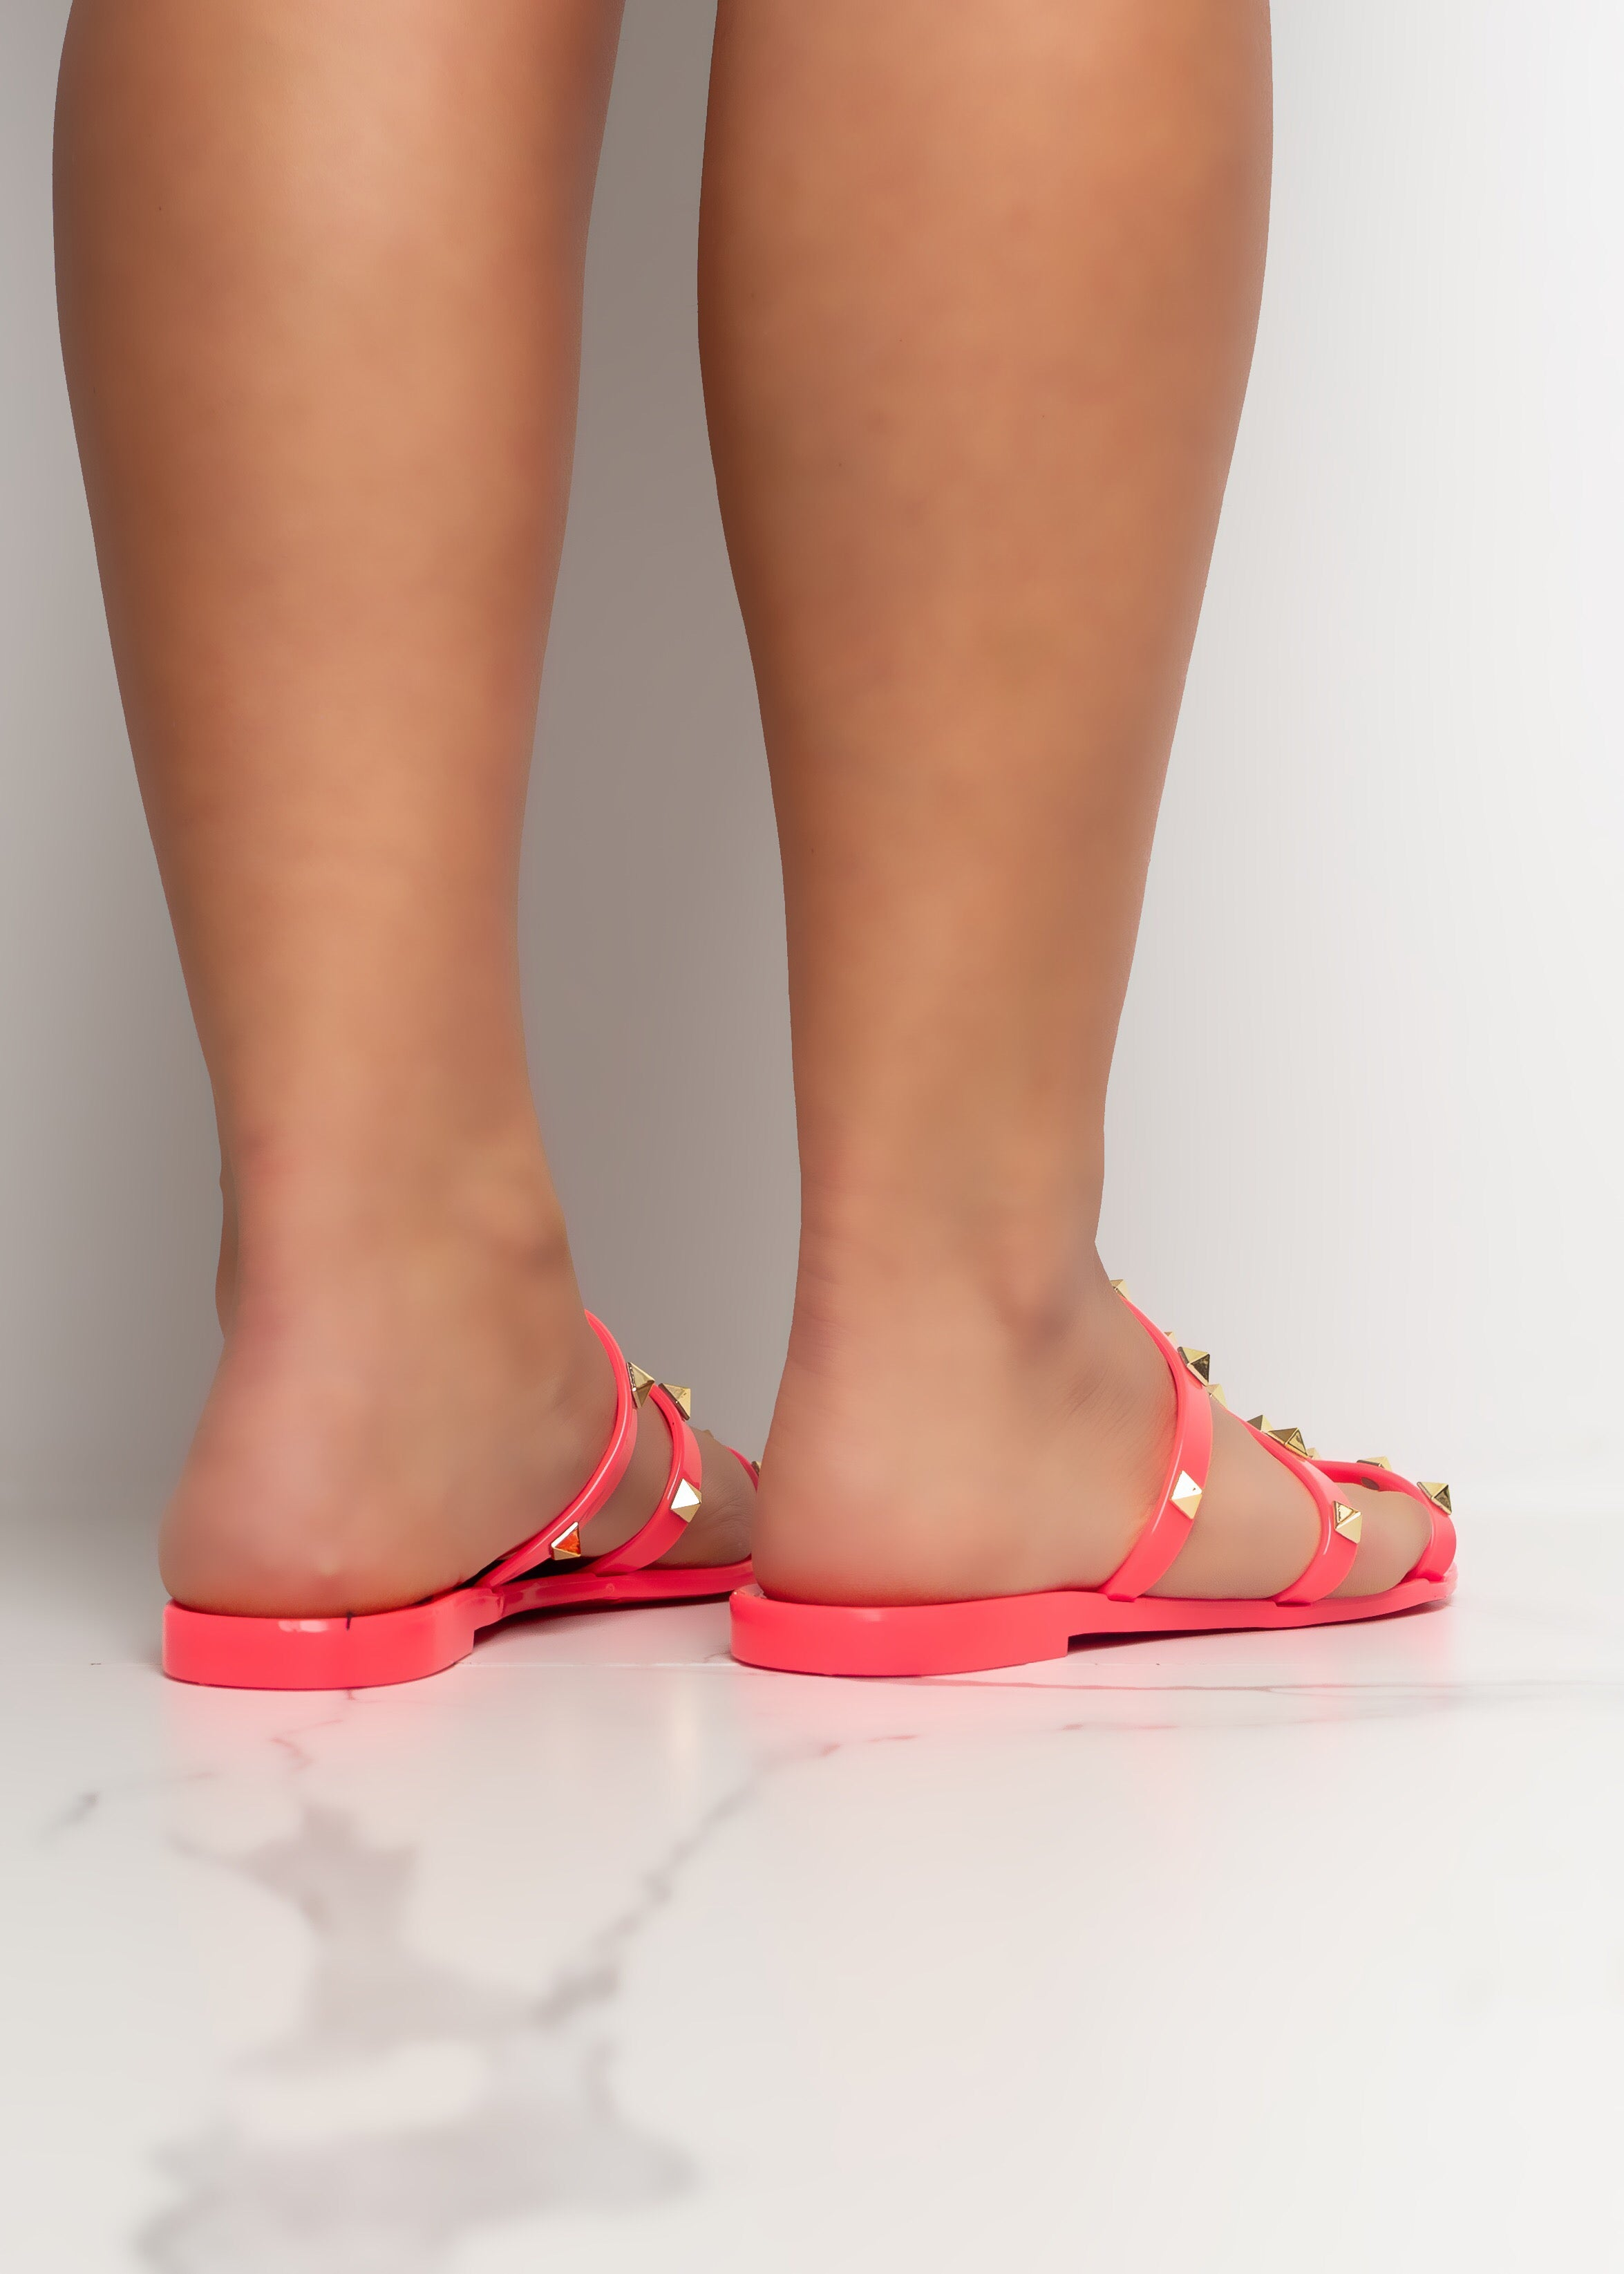 Caught In The Middle Neon Fuchsia Sandals